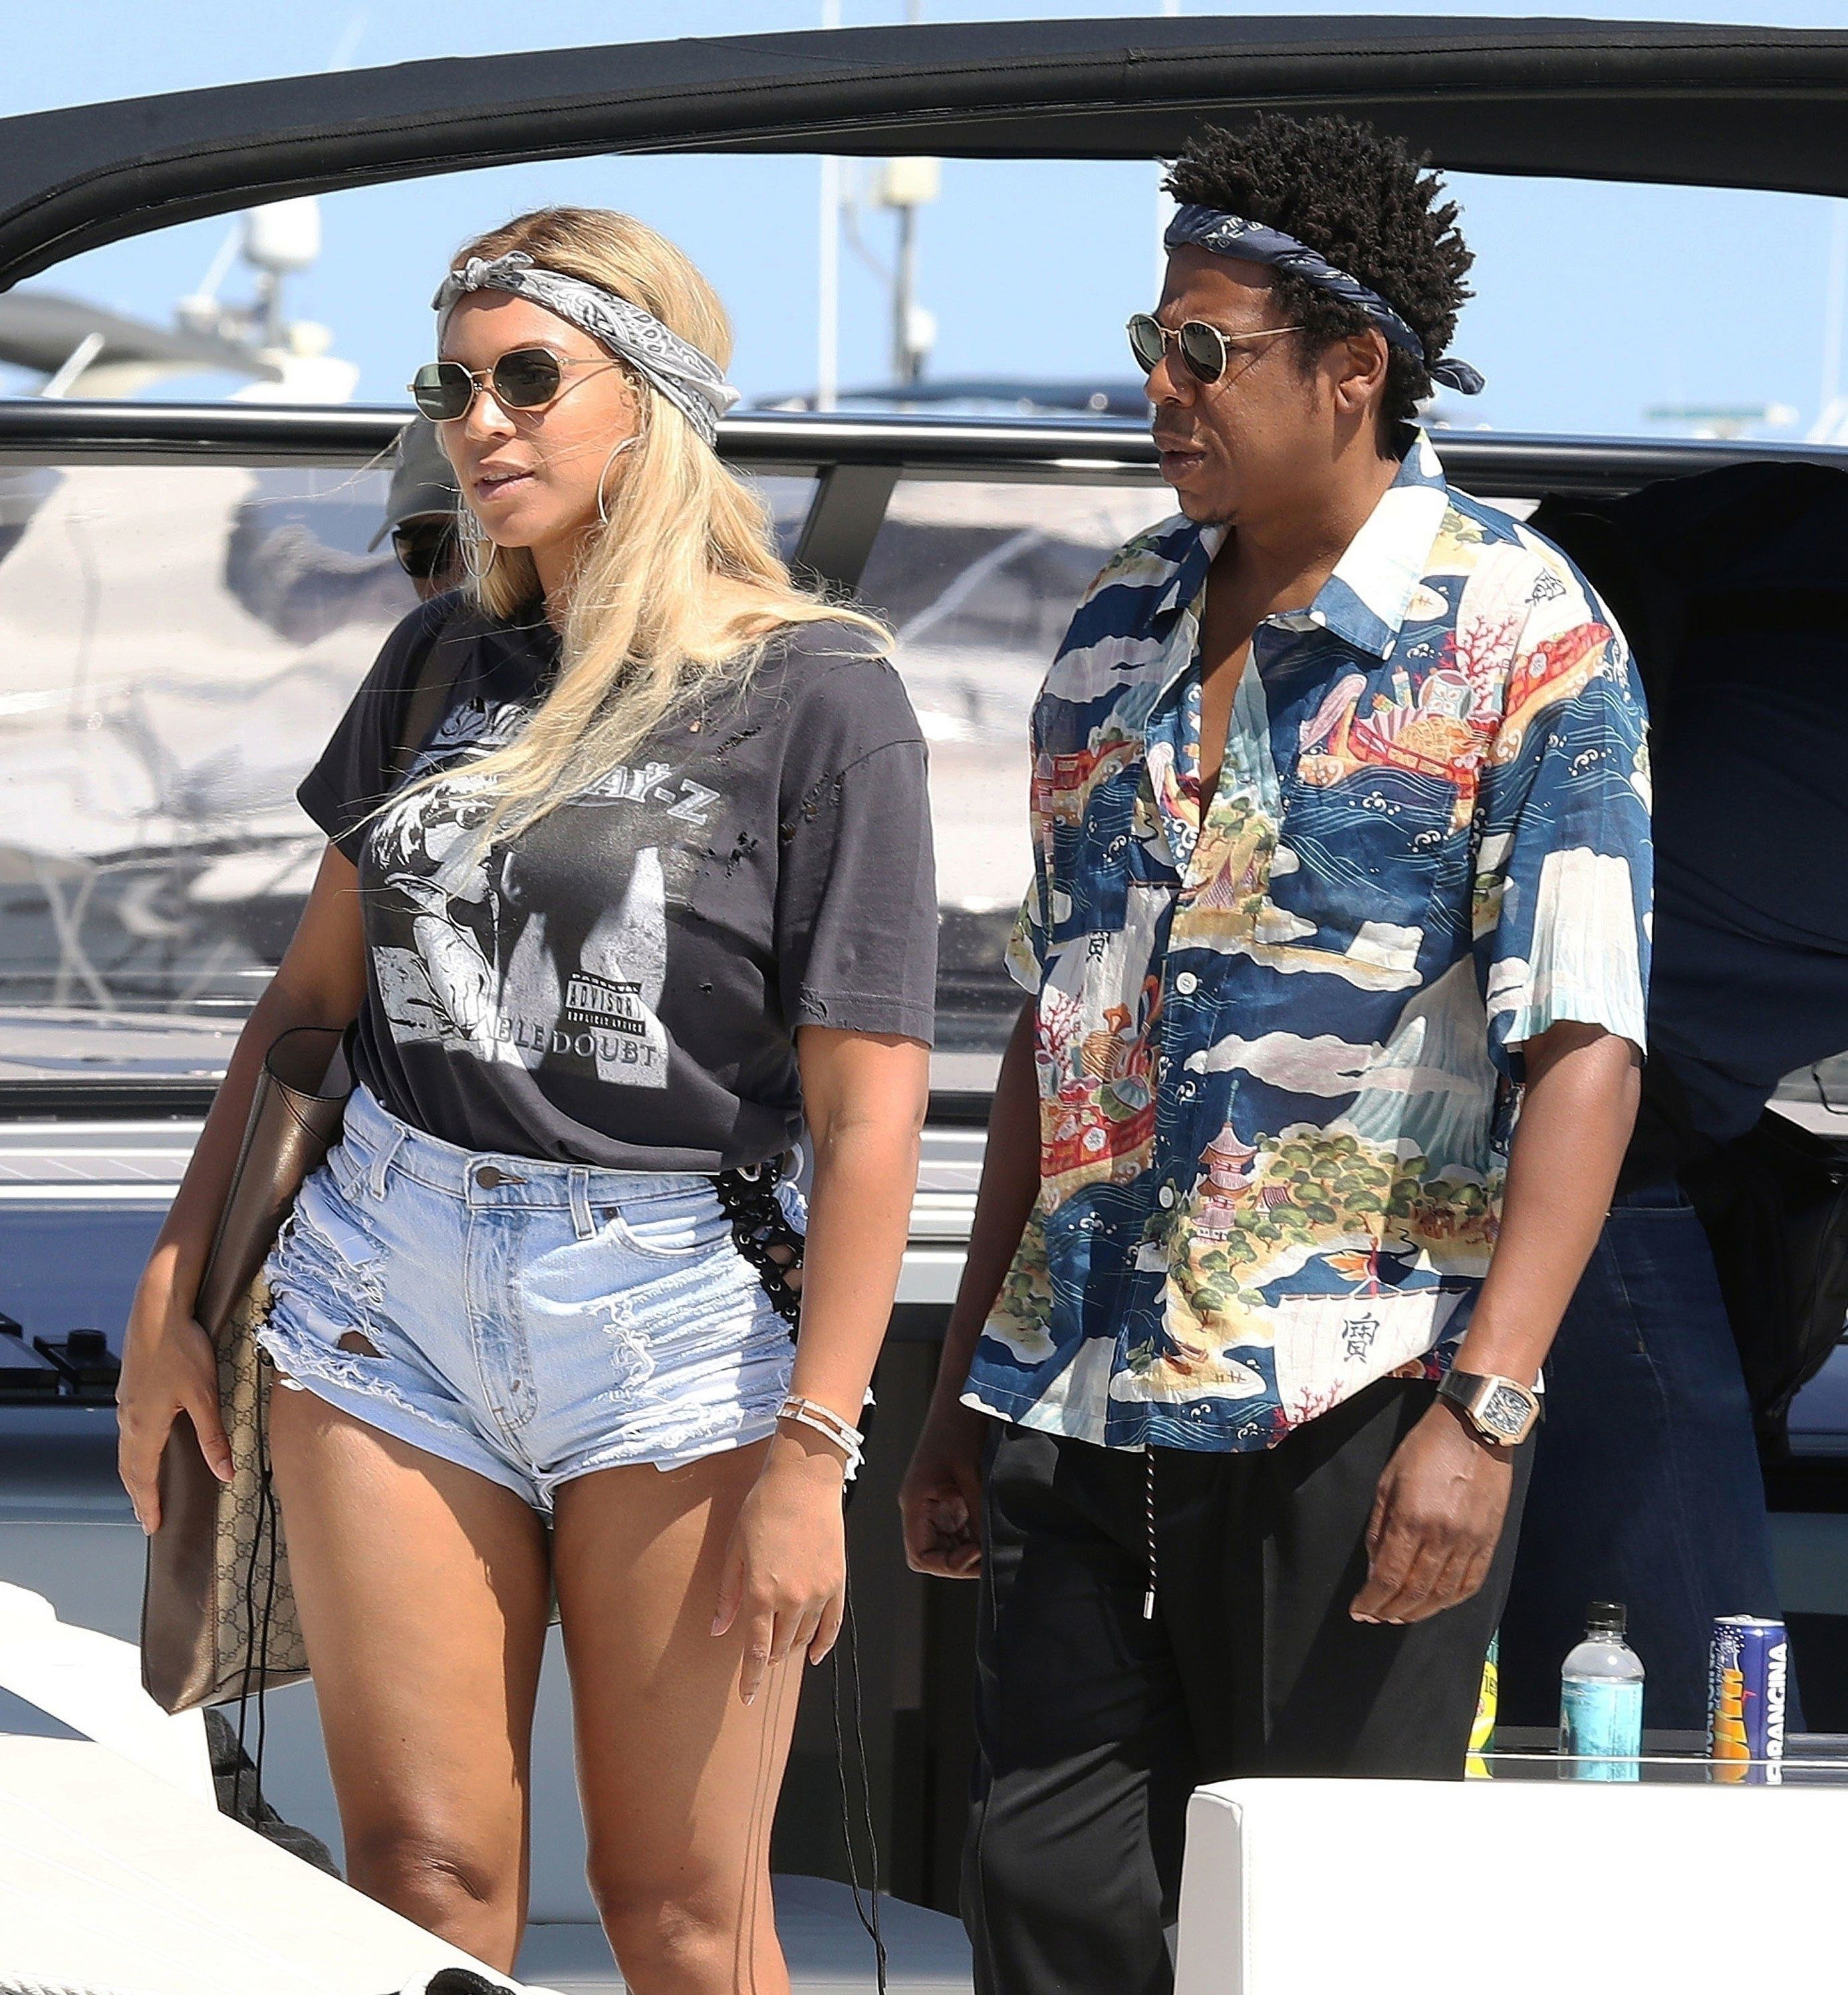 7d1449956a2a6 Of Course Beyoncé Is Wearing Jay-Z Merch - and Jay is wearing Gucci! Just  love this couple!